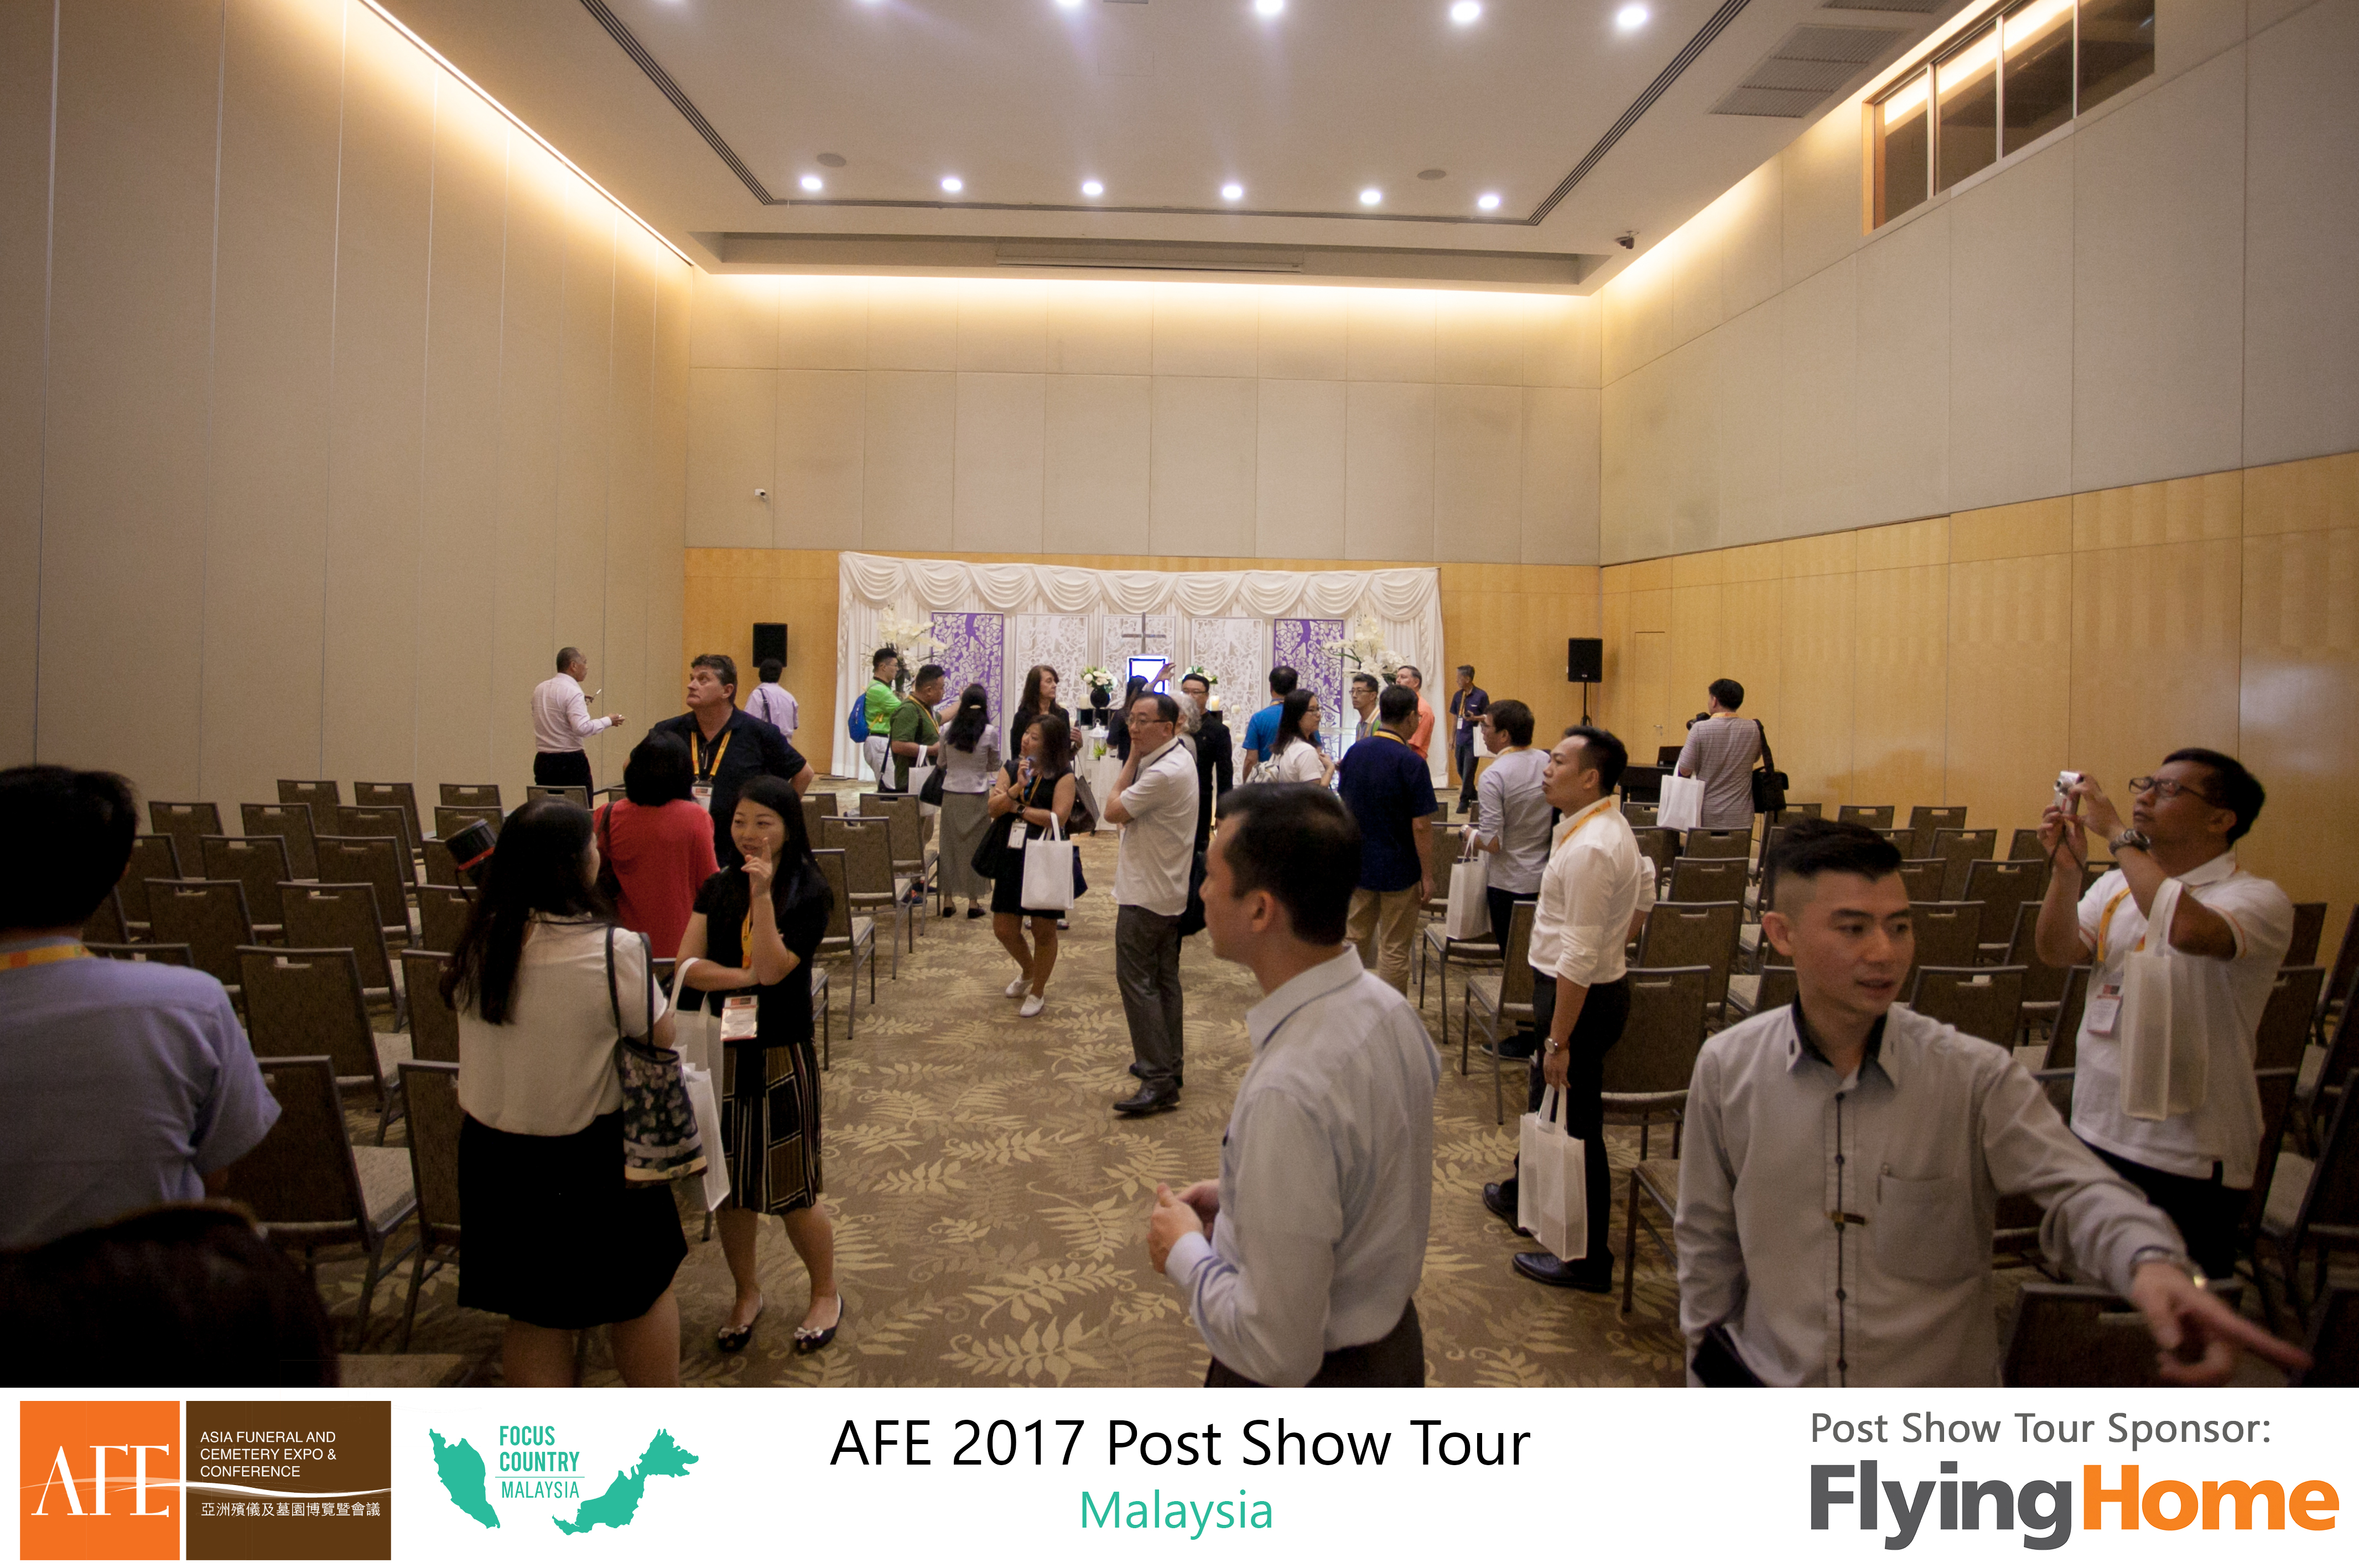 AFE Post Show Tour 2017 Day 3 -59